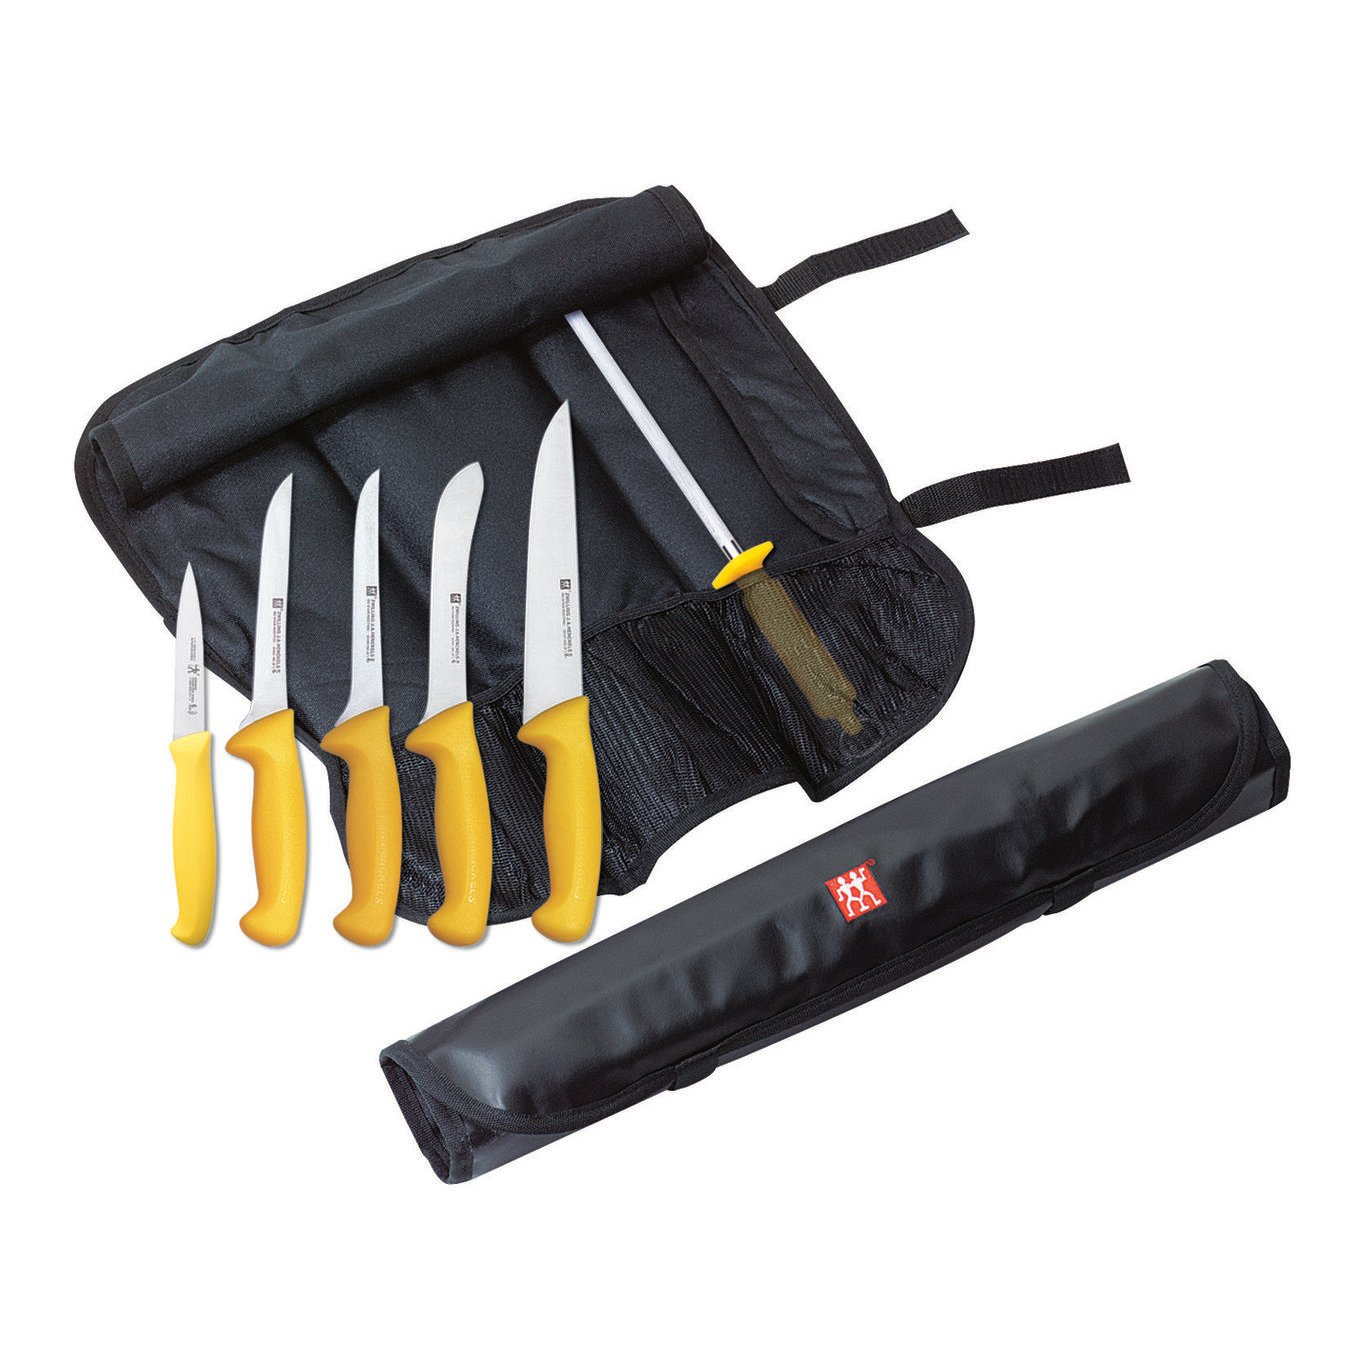 Knife roll set, 7 Piece | German Stainless Steel,,large 1